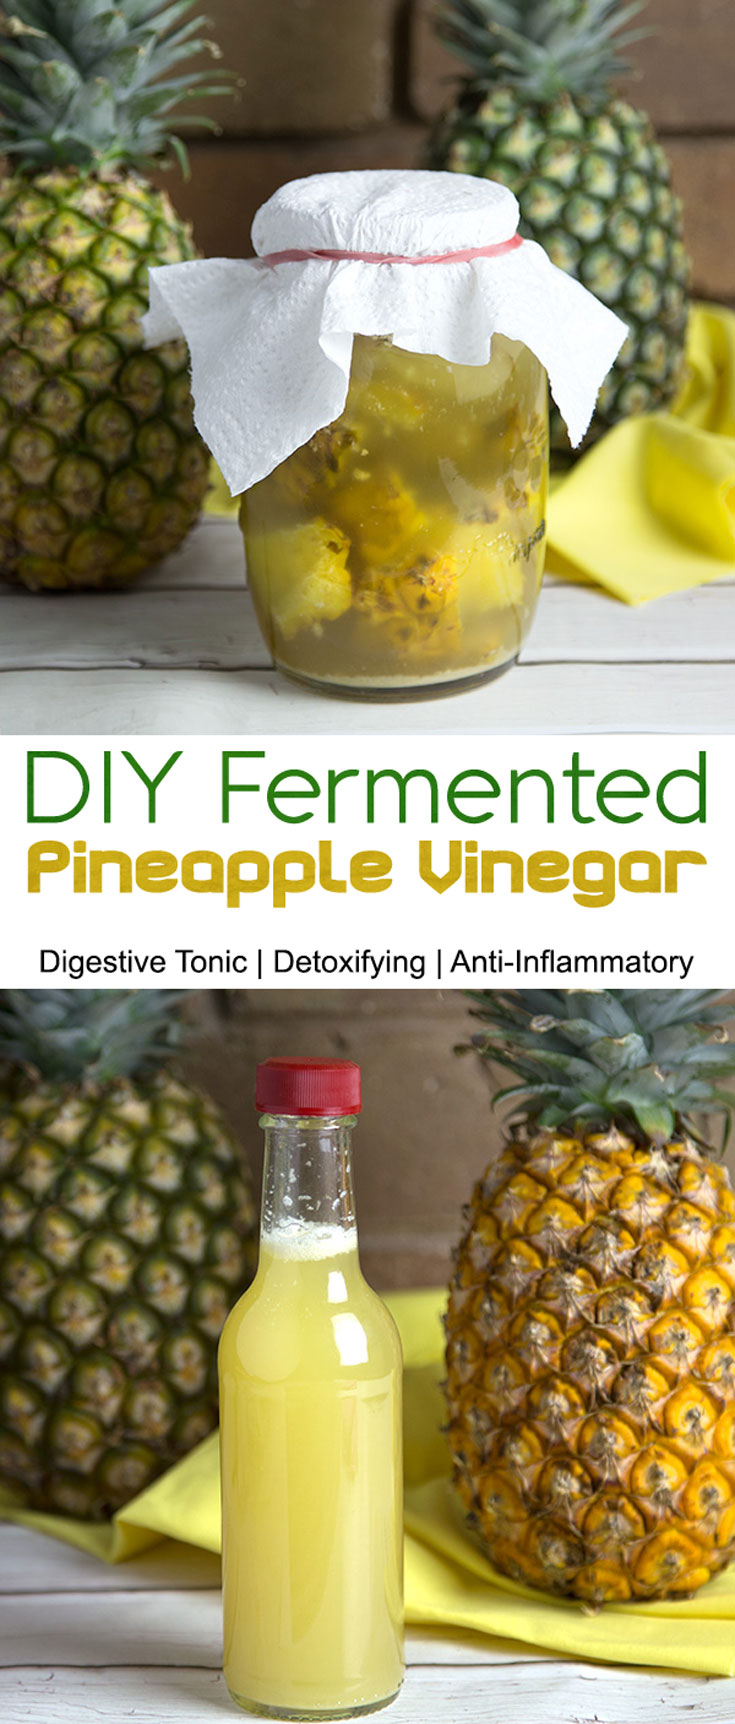 DIY Fermented Pineappl Vinegar @OmNomAlly - Digestive Tonic, Prebiotic, Anti-Inflammatory